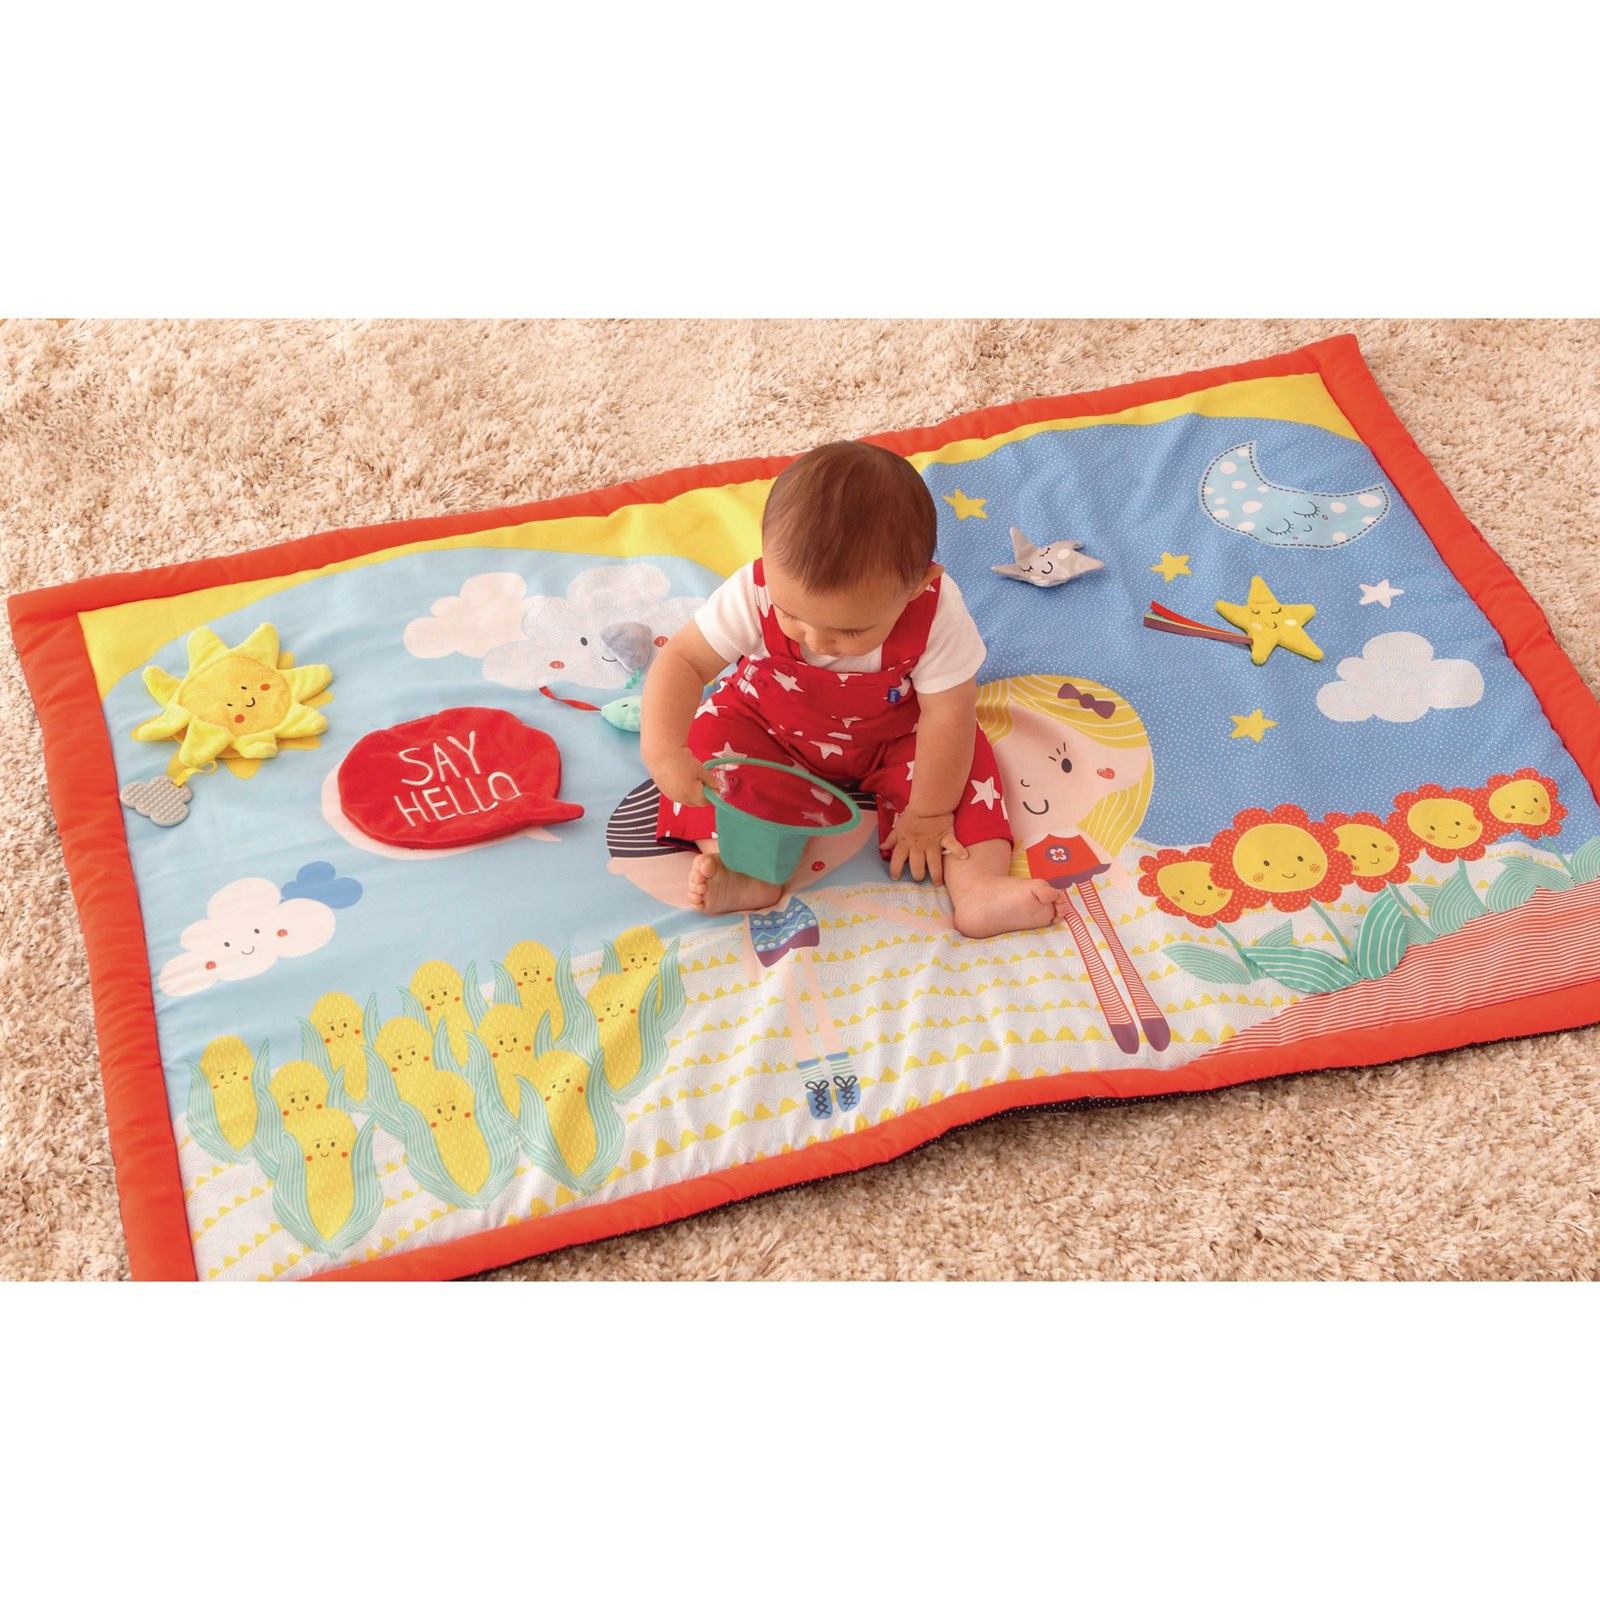 playtime vc treetop mat toys skiphop com and friends activity gym baby